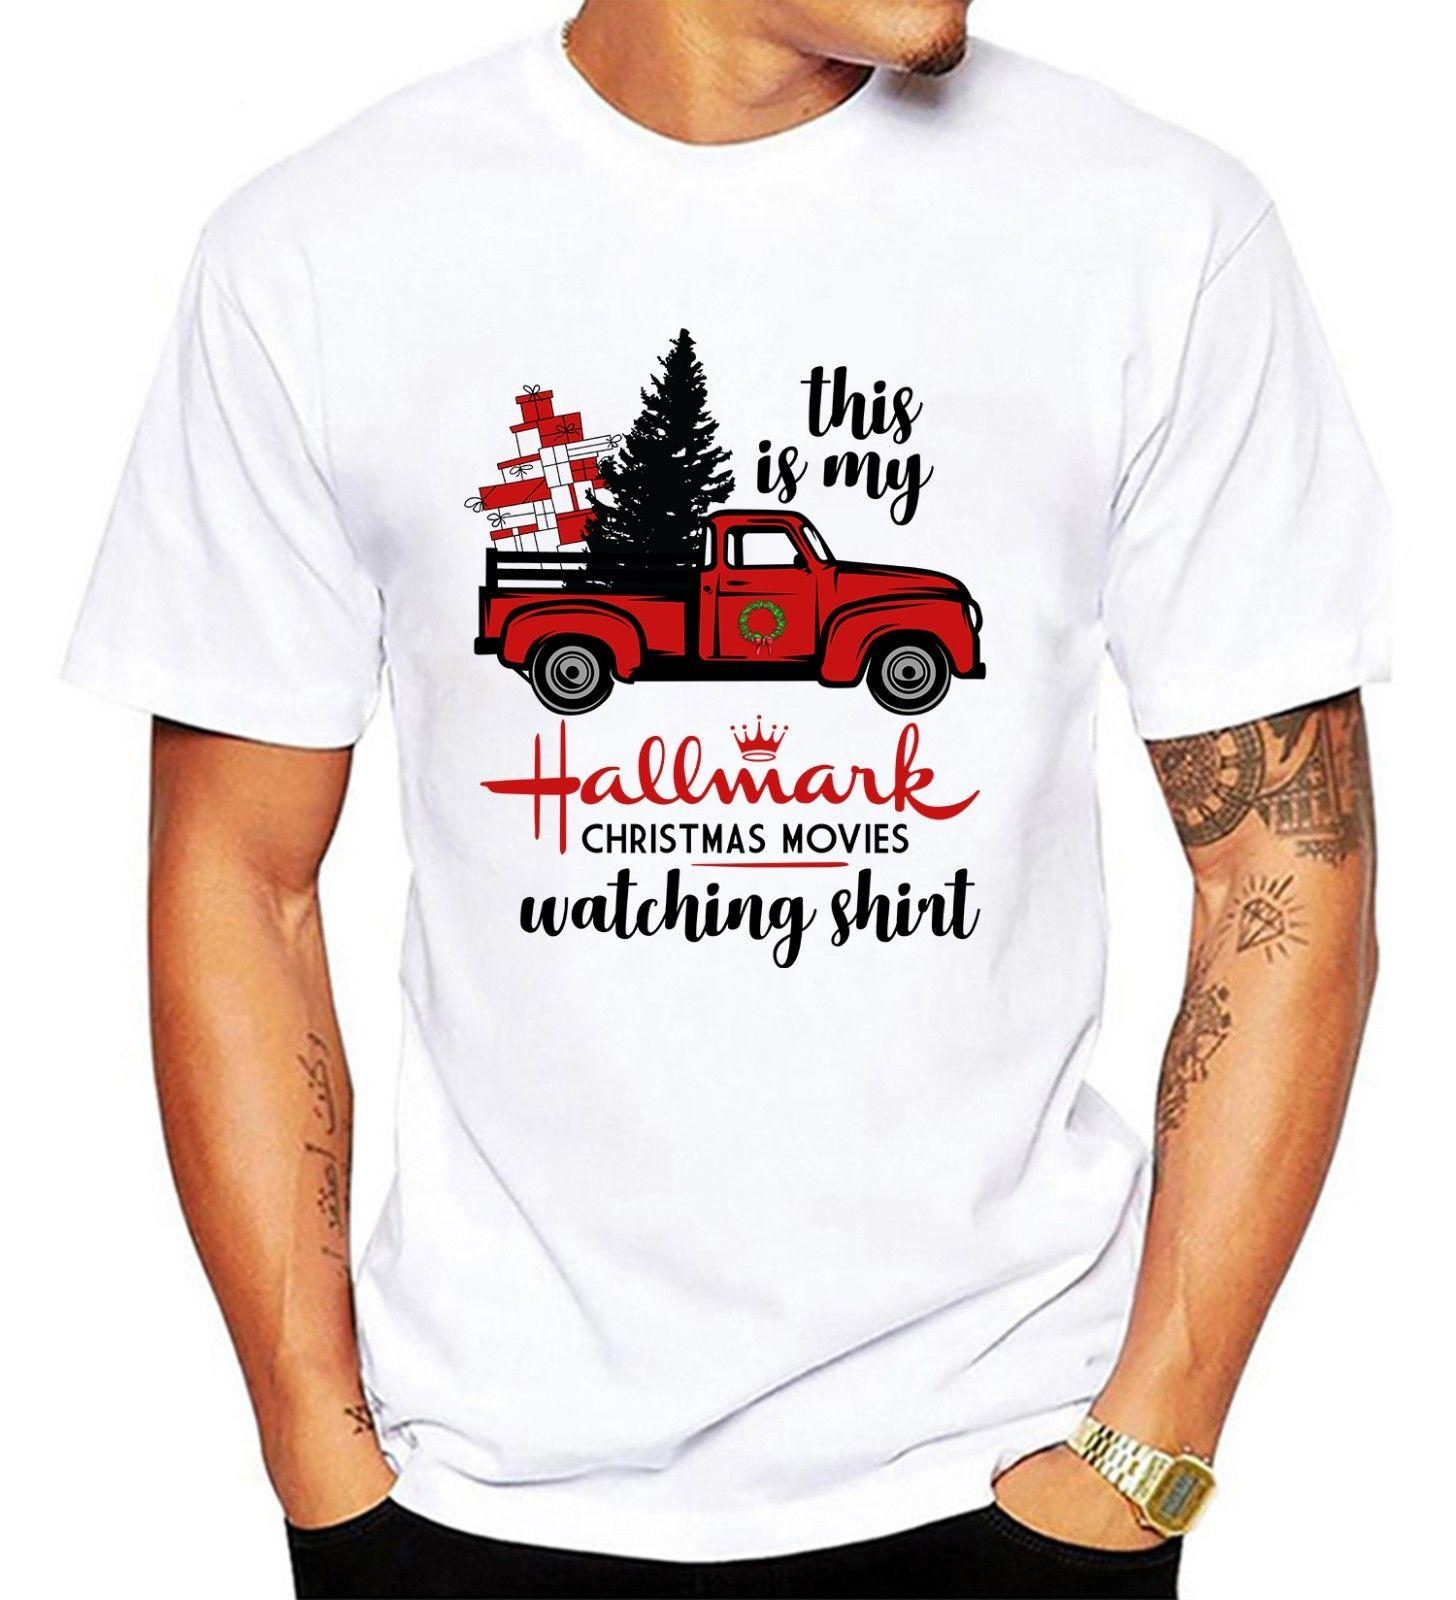 e0e9bc7fc94 This Is My Hallmark Christmas Movie Watching Shirt Men   Youth T Shirt  Online T Shirts Funky T Shirts From Funnytees45